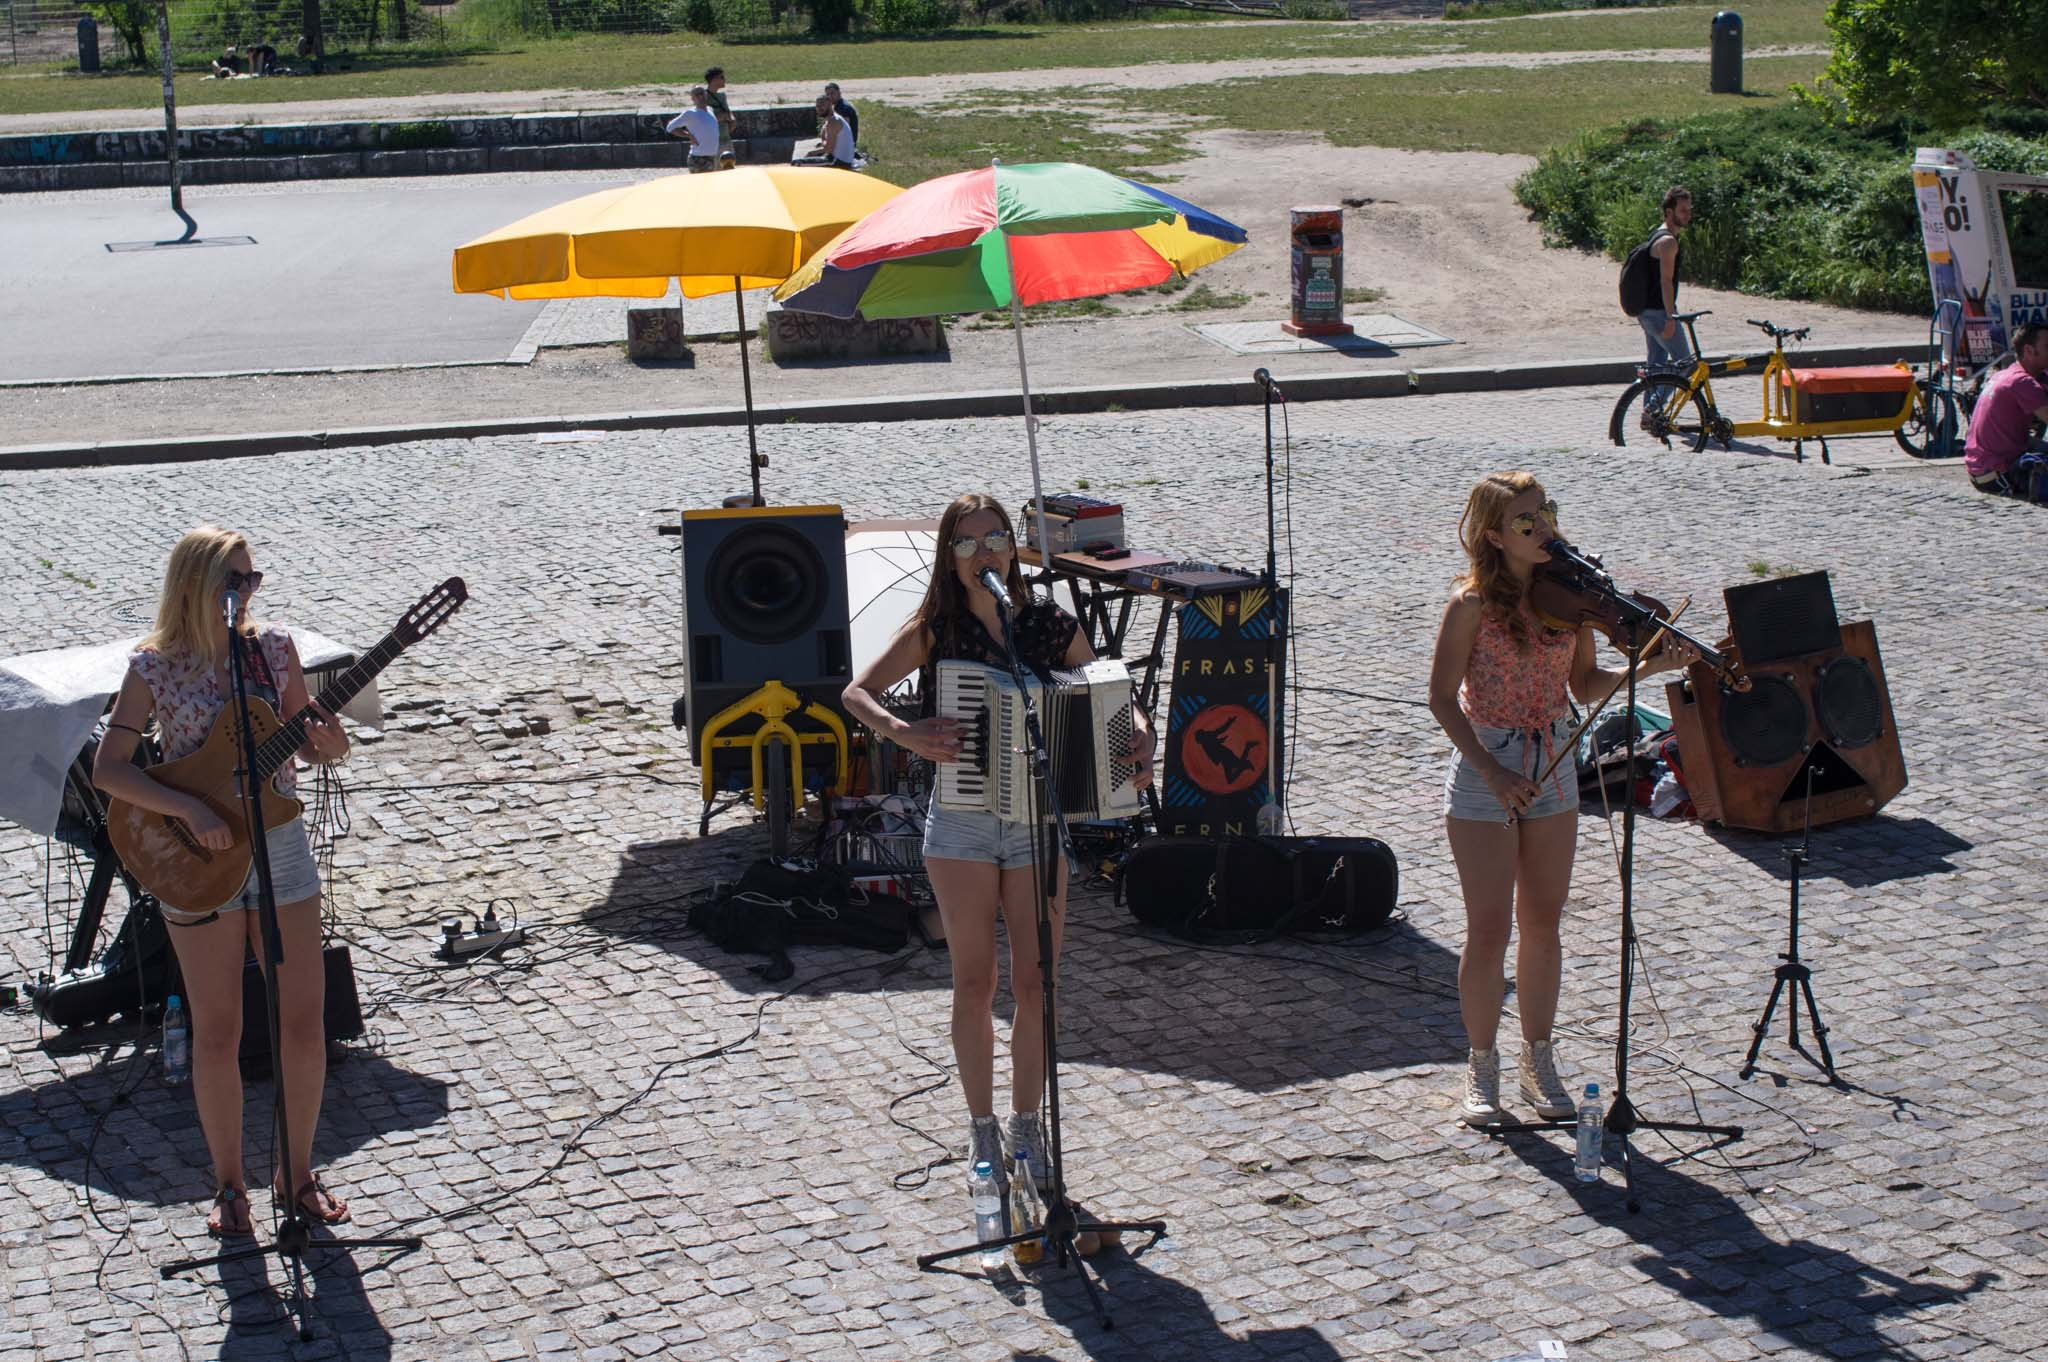 The Priester Sisters are an all-girls band from Slovakia with the classic instrumentation of accordion, violin and guitar, accompanied with 3-voice harmonies.